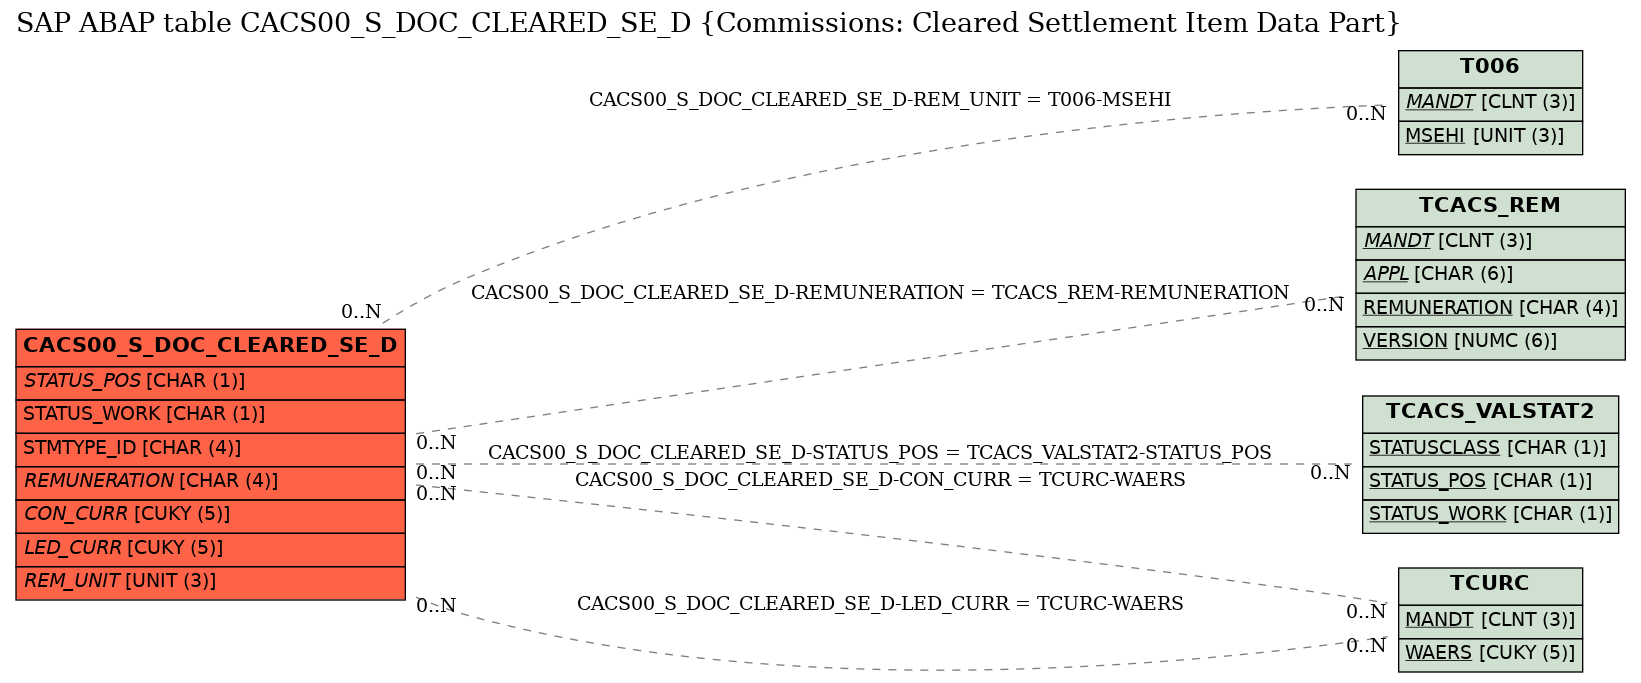 E-R Diagram for table CACS00_S_DOC_CLEARED_SE_D (Commissions: Cleared Settlement Item Data Part)